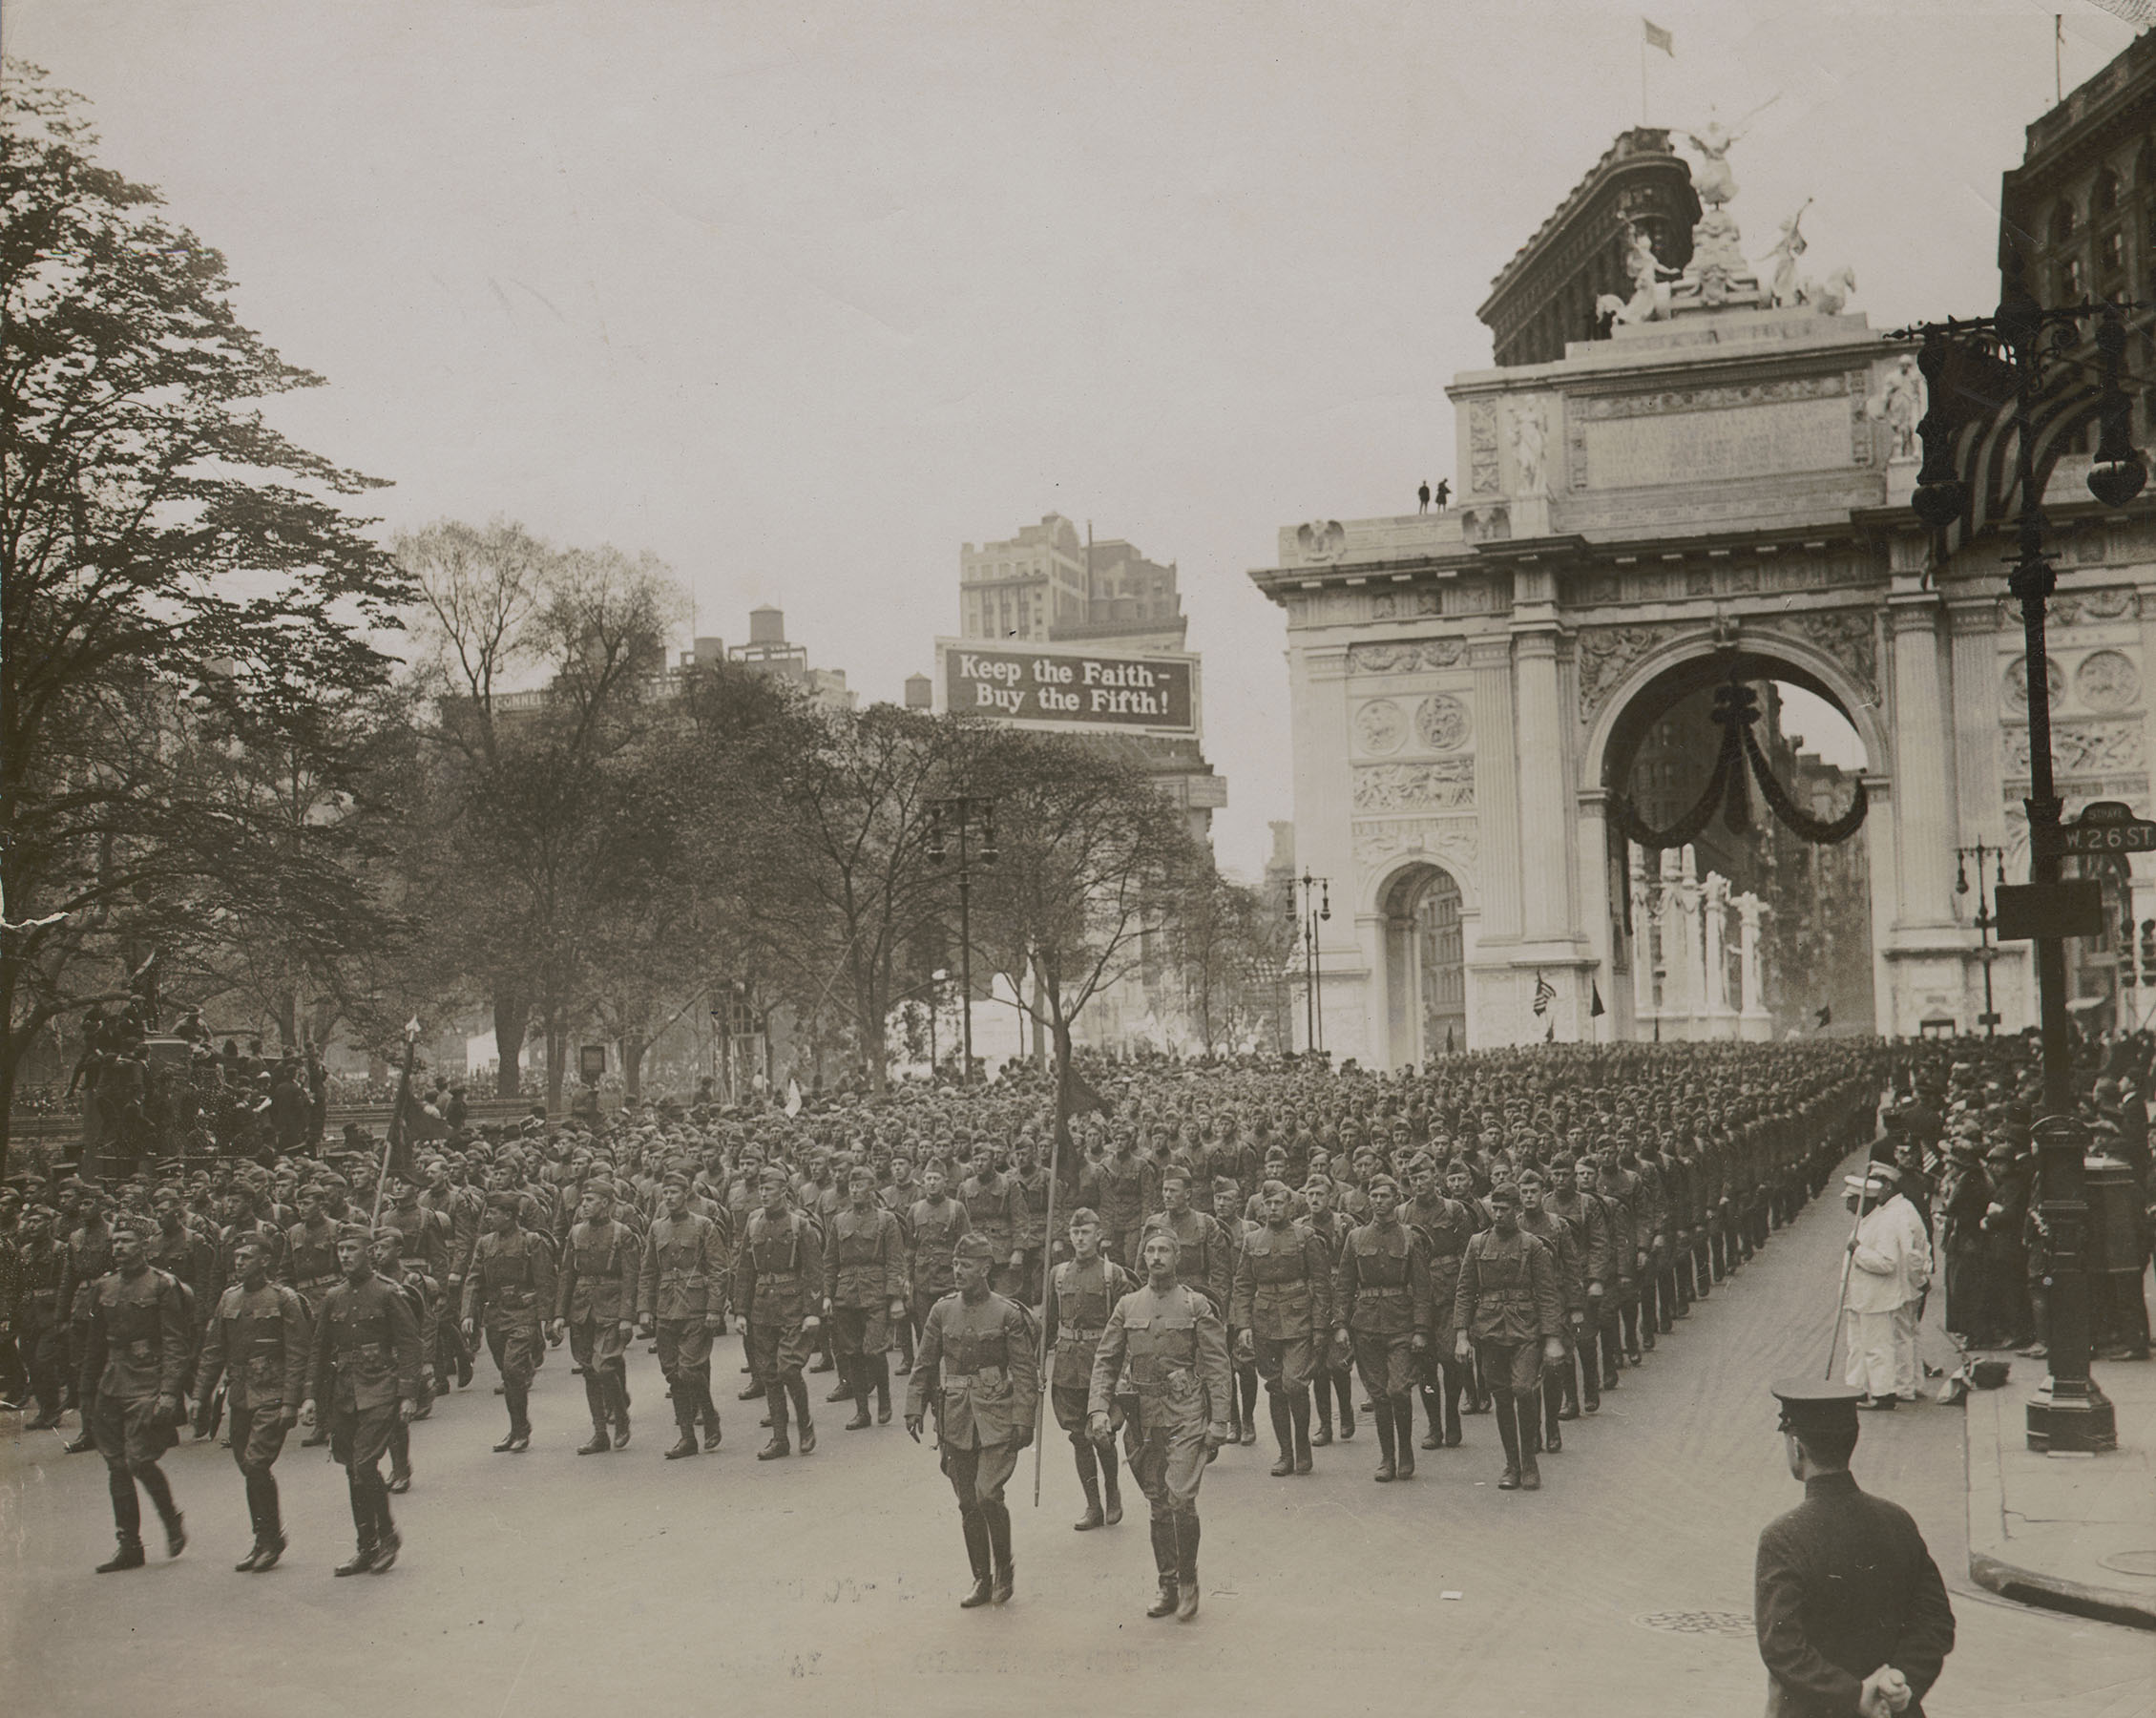 Parade of the 77th Division, 1919. General view of the parade showing a company passing through the Victory Arch at Madison Square in mass formation, the same formation used by the Division in their review before General Pershing. Underwood & Underwood. Mayor's Reception Committee, NYC Municipal Archives.